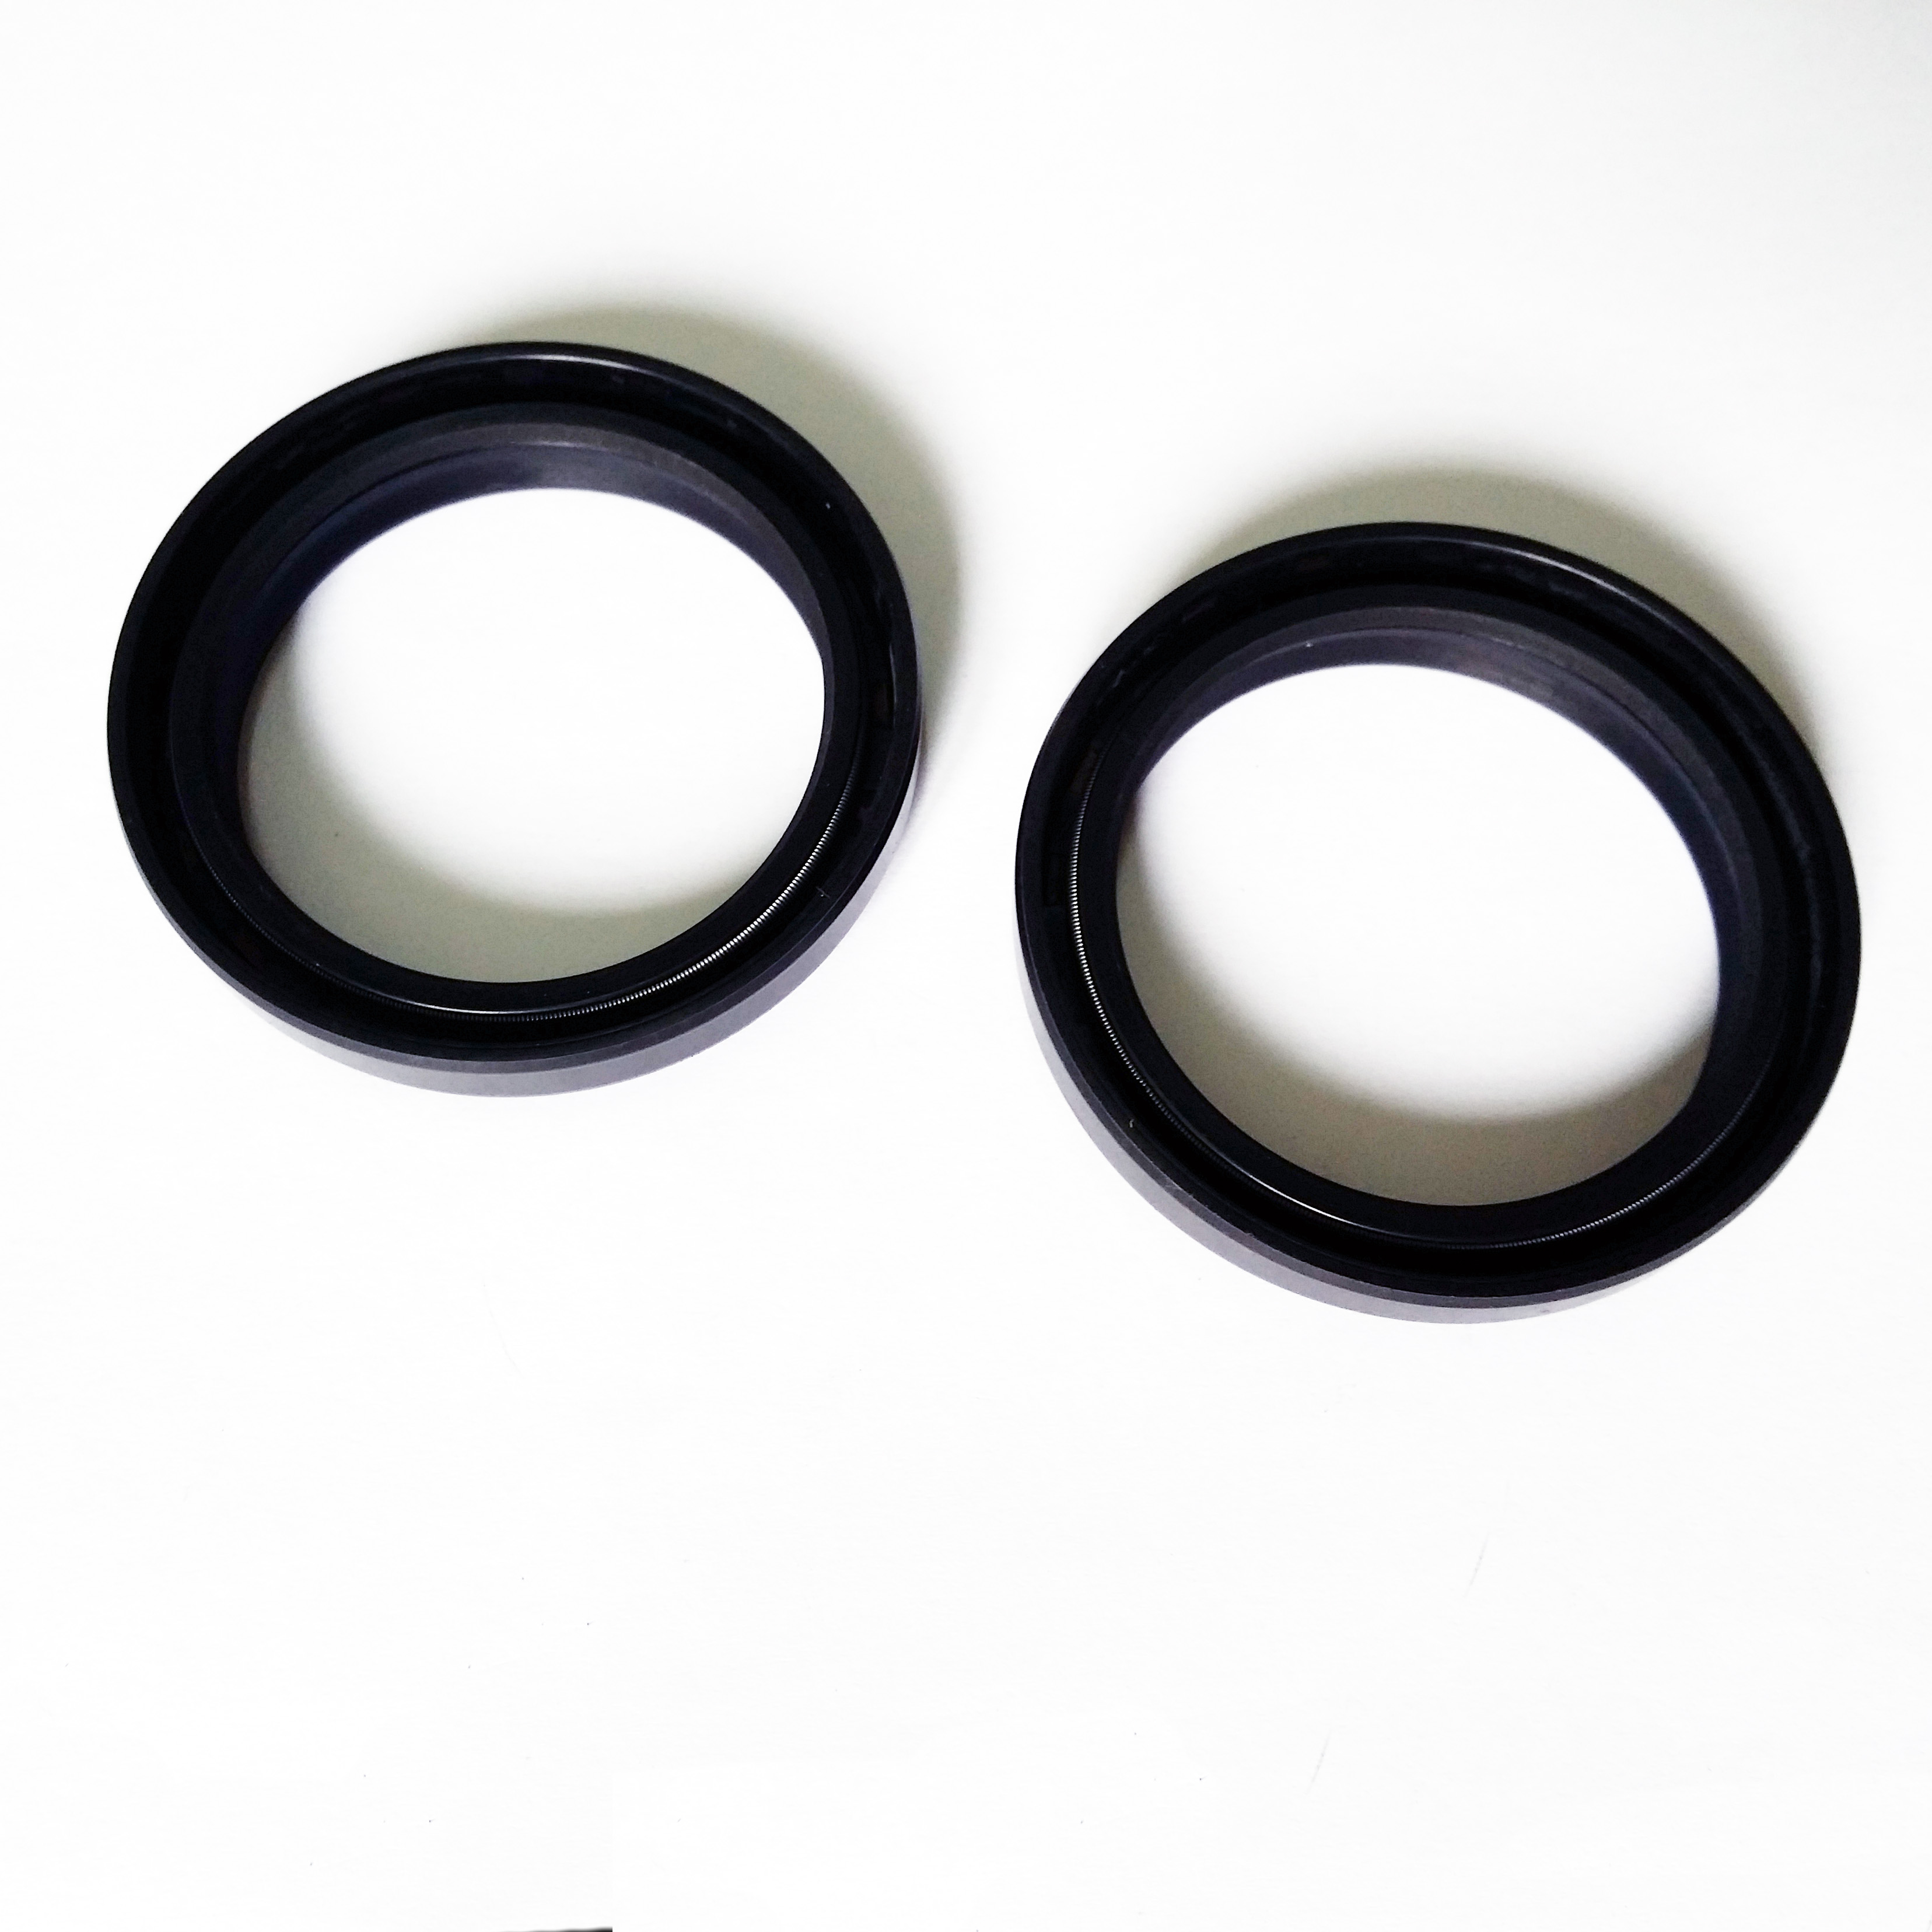 K-Tech Yamaha FZR1000 1987-1988 NOK Front Fork Oil Seals 41x53x8/9.5mm